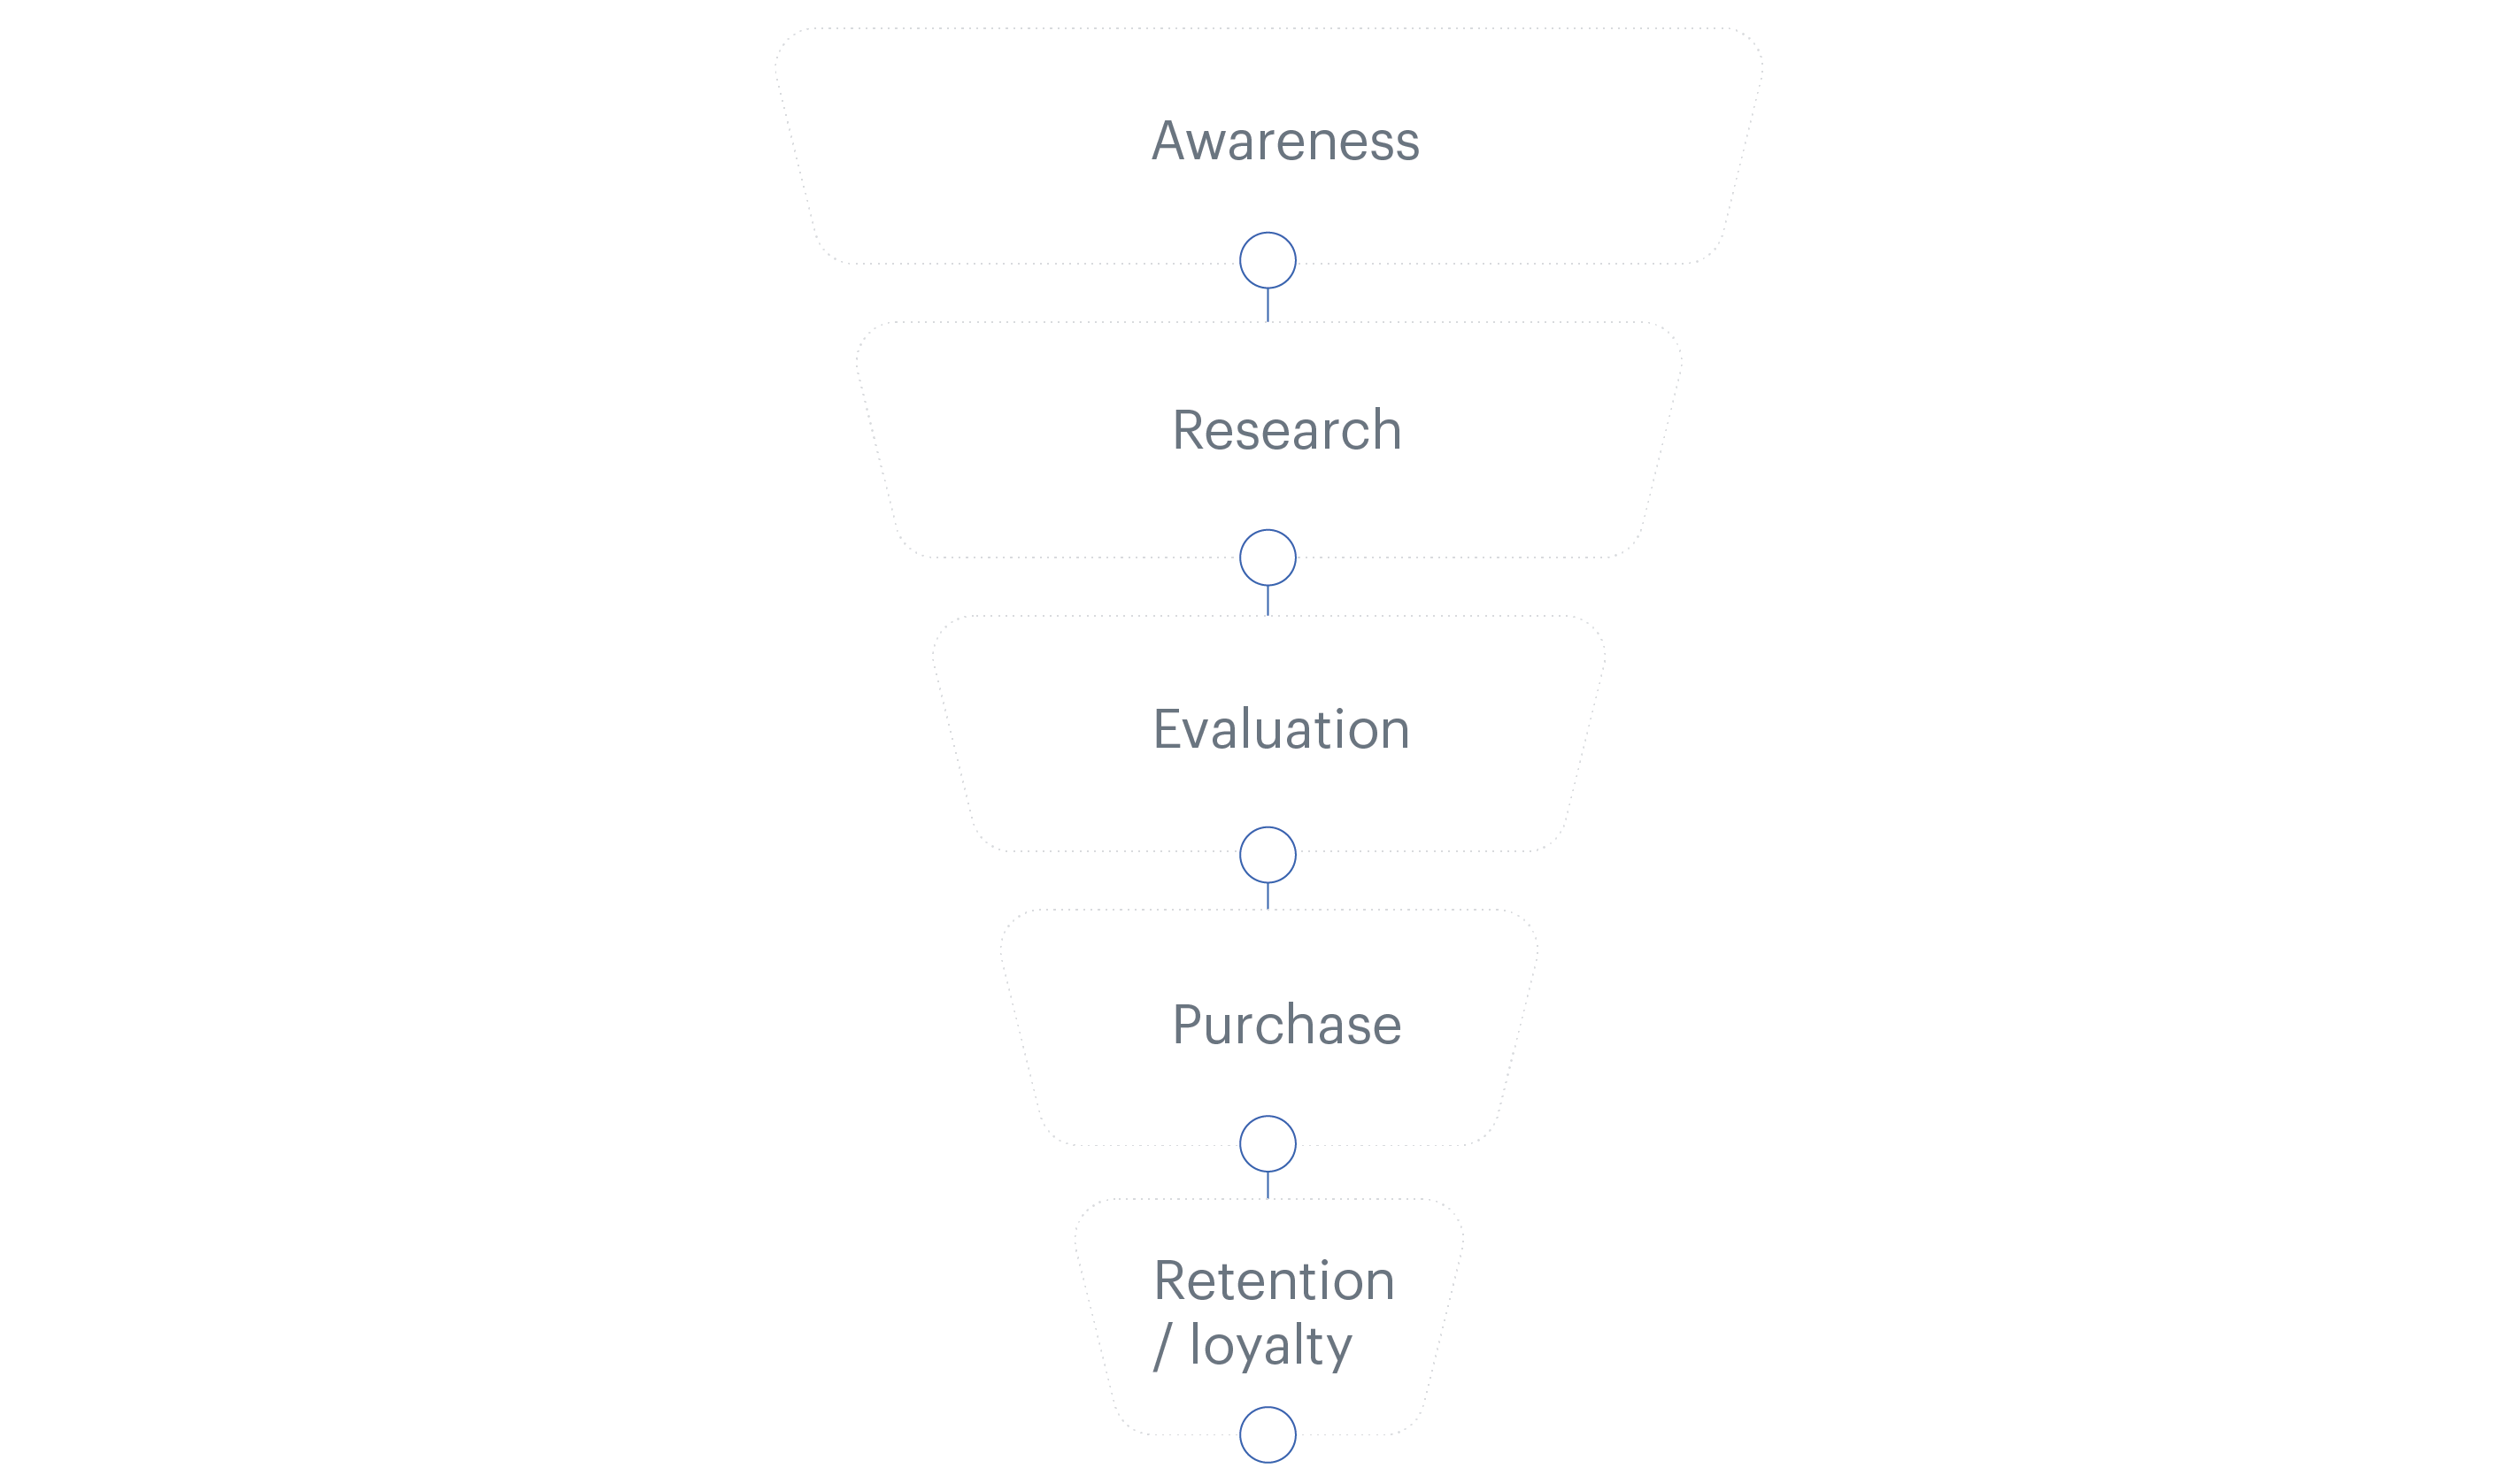 Stages of completed transaction